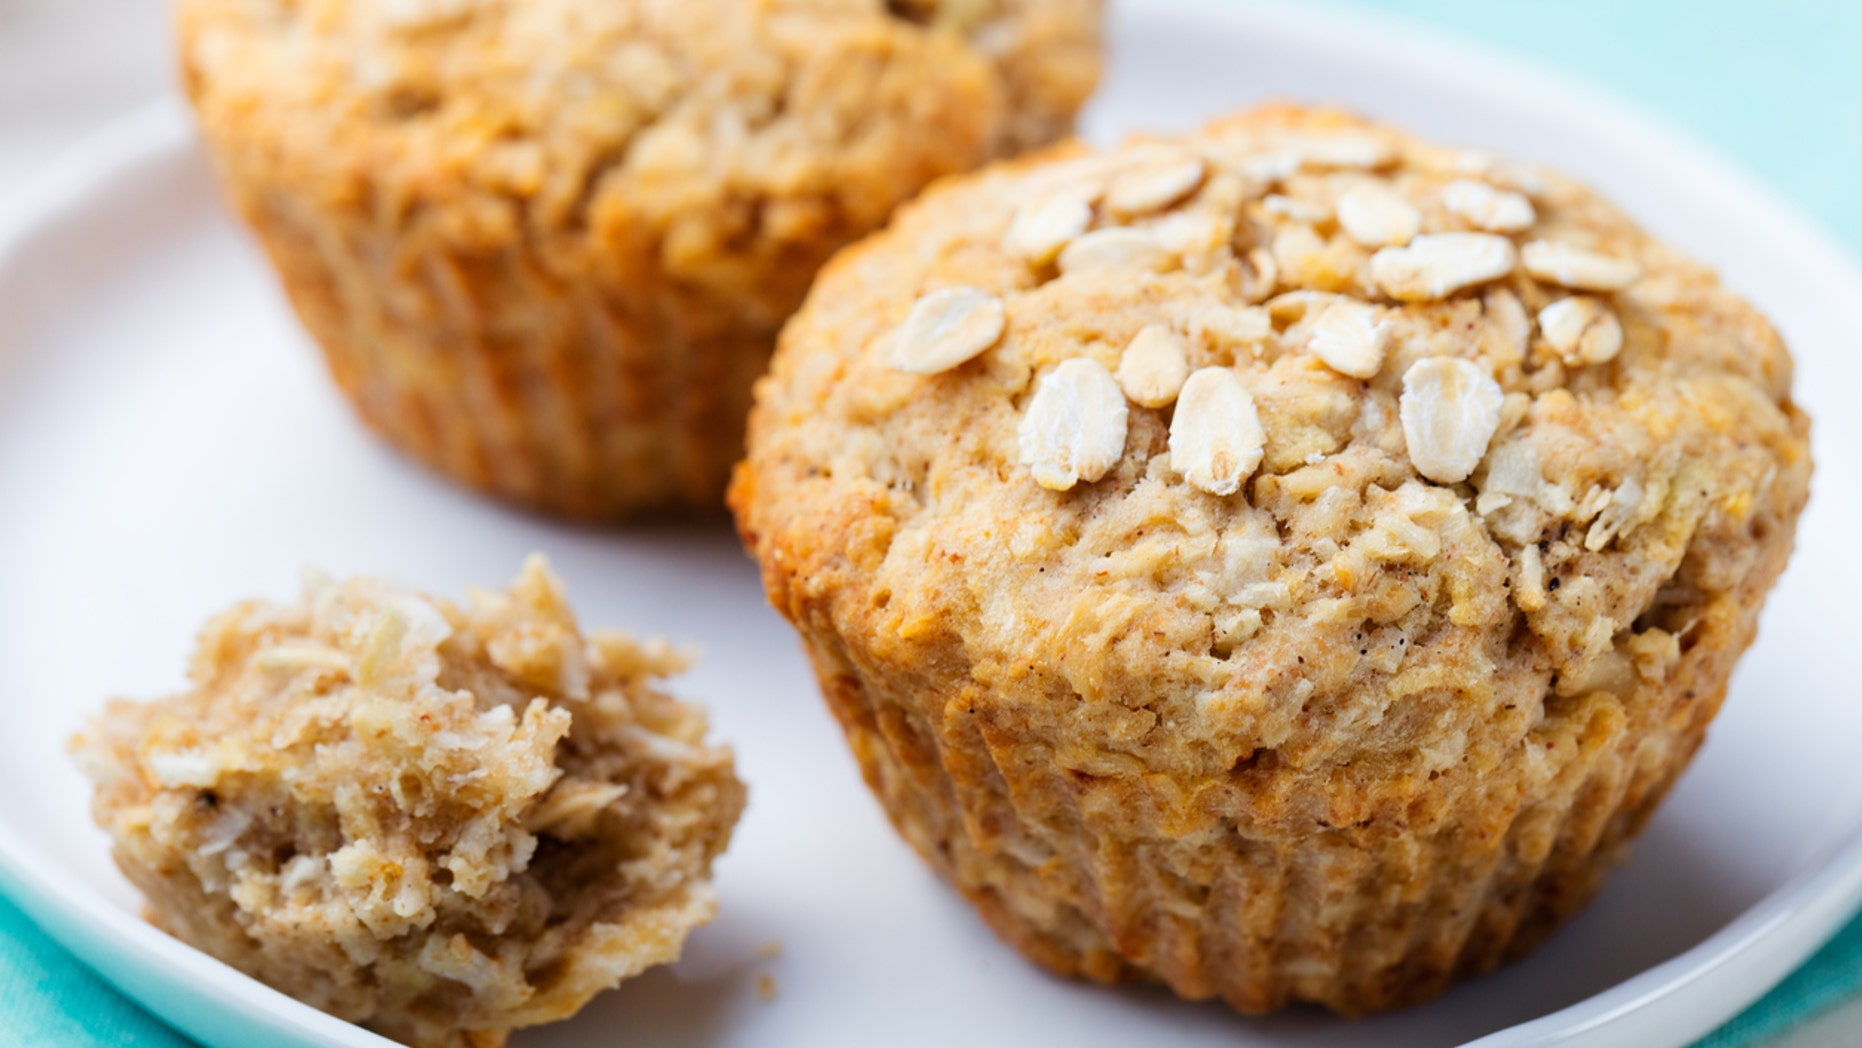 Healthy vegan oat muffins, apple and banana cakes with sour cream on a white plate Blue stone background